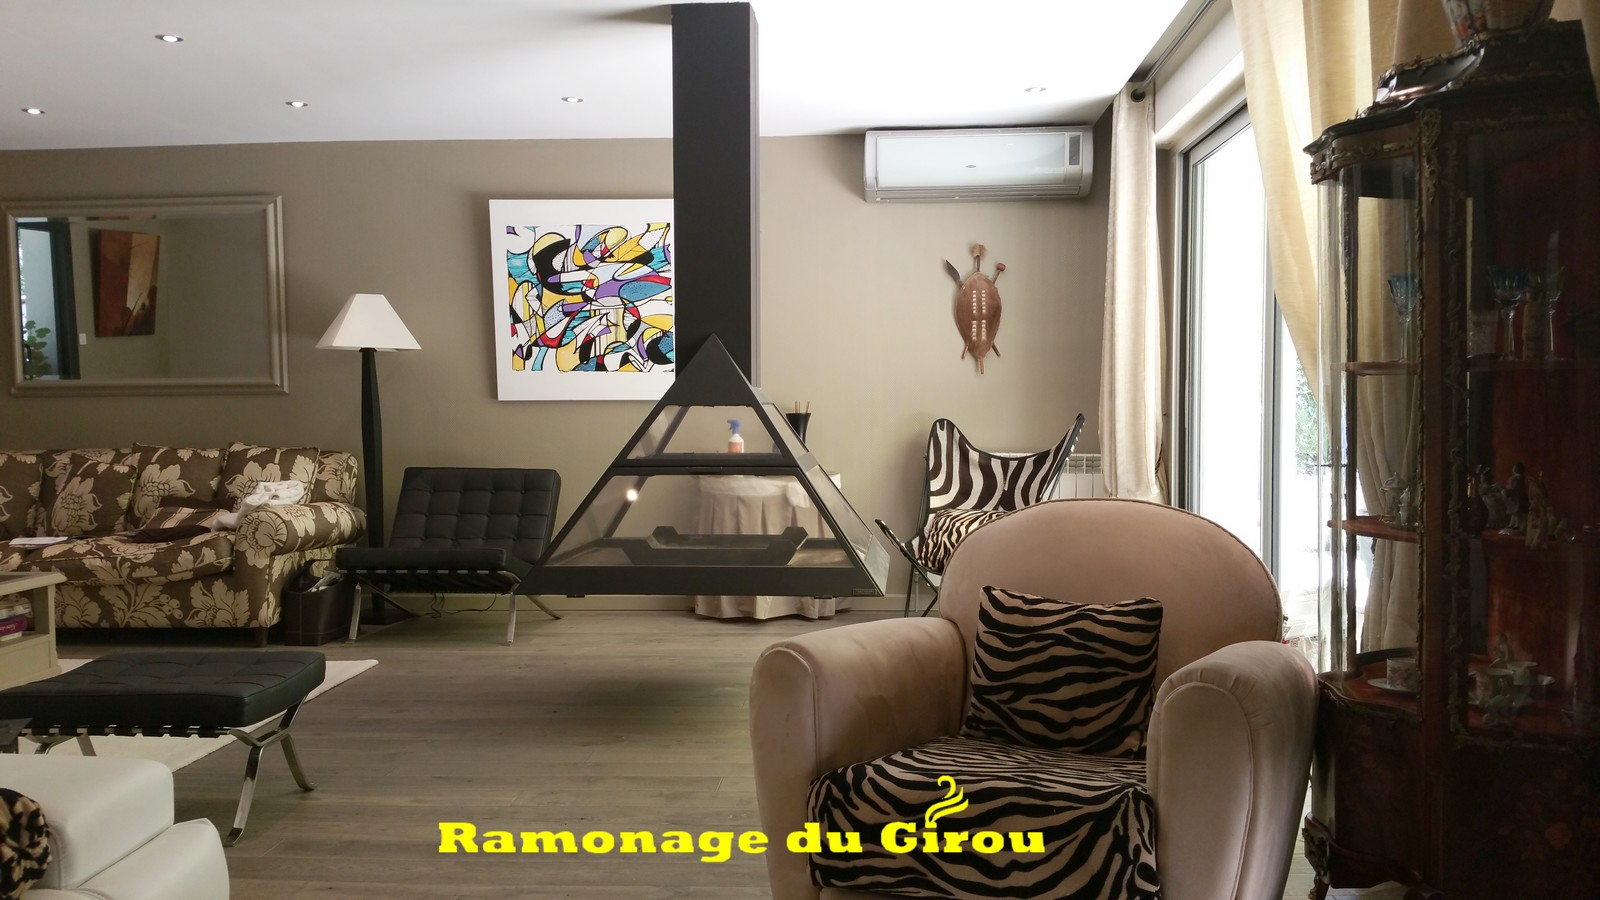 ramonage du girou les differentes cheminees. Black Bedroom Furniture Sets. Home Design Ideas